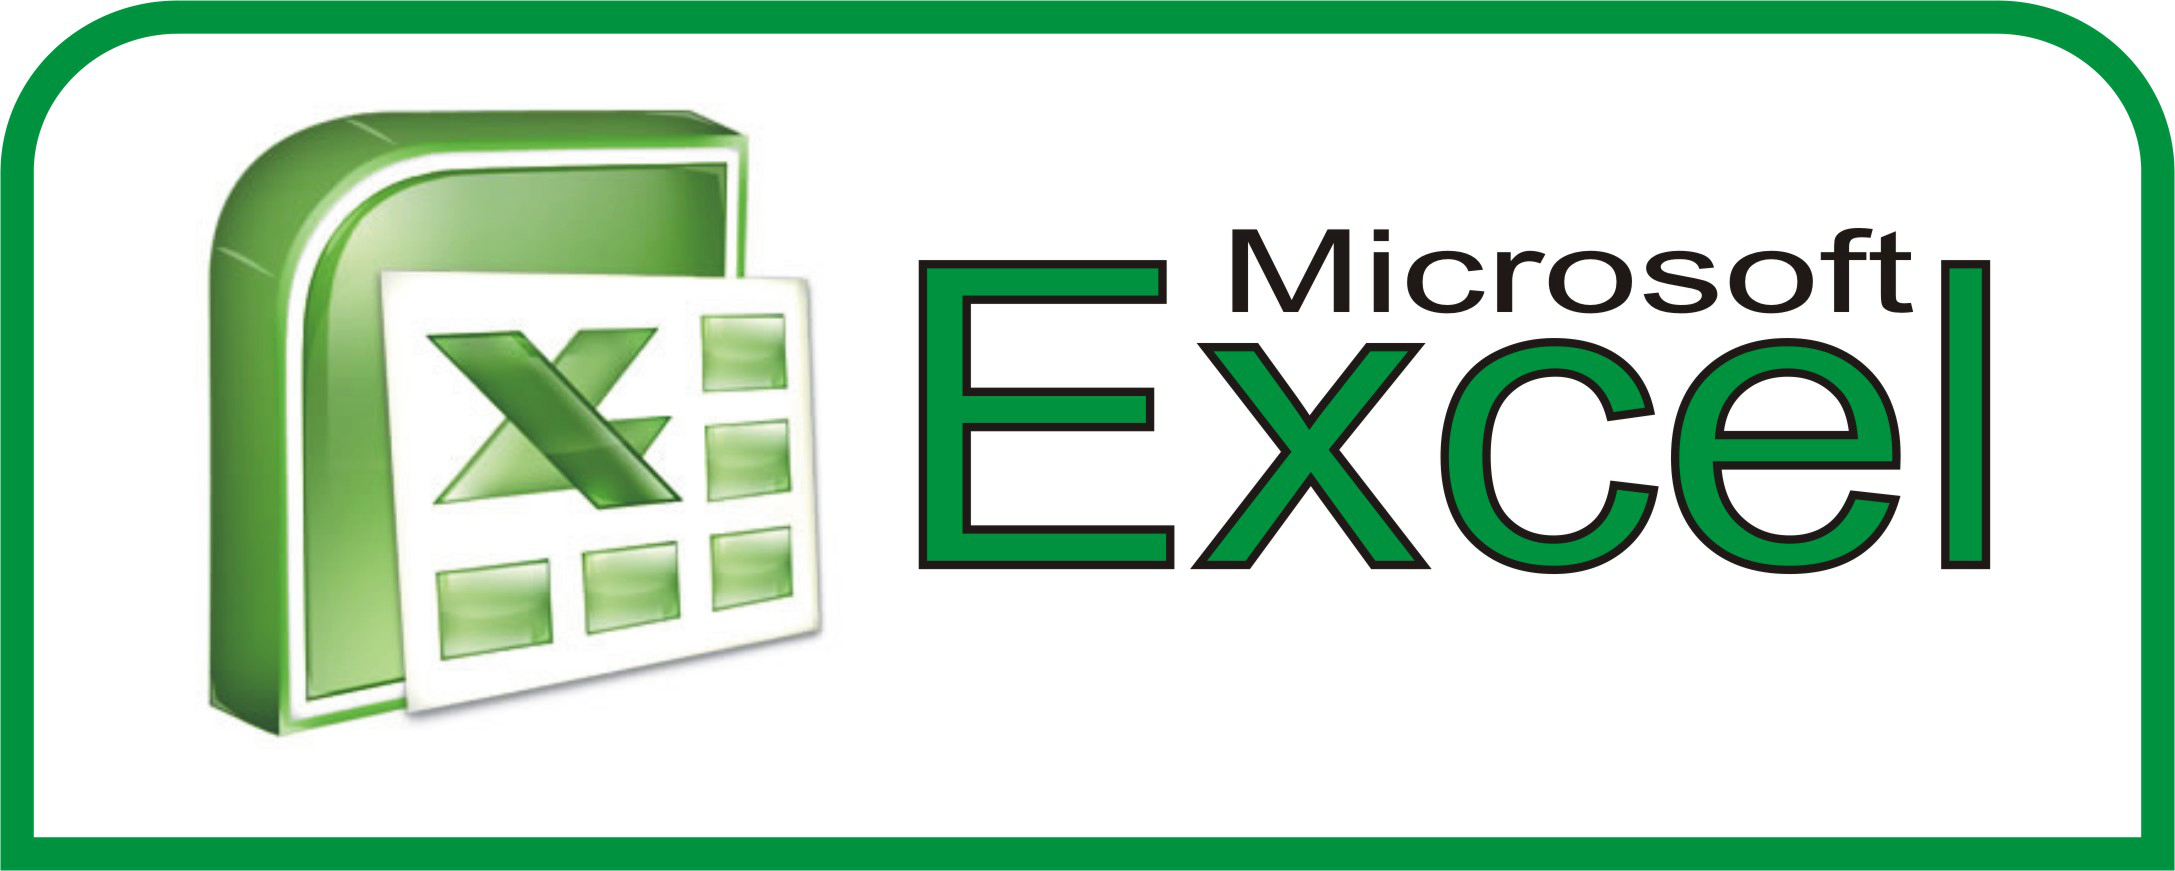 Ediblewildsus  Unique  Excel Shortcuts You Probably Didnt Know About  Techdissected With Heavenly Creating A Pivot Table In Excel  Besides Excel For Mac  Furthermore Remove Protection From Excel With Breathtaking Excel Hide Comments Also Excel Freeze Columns In Addition Excel Invoice Template Download And Excel Surface Chart As Well As Excel Construction Services Additionally Excel Loan Amortization Schedule From Techdissectedcom With Ediblewildsus  Heavenly  Excel Shortcuts You Probably Didnt Know About  Techdissected With Breathtaking Creating A Pivot Table In Excel  Besides Excel For Mac  Furthermore Remove Protection From Excel And Unique Excel Hide Comments Also Excel Freeze Columns In Addition Excel Invoice Template Download From Techdissectedcom